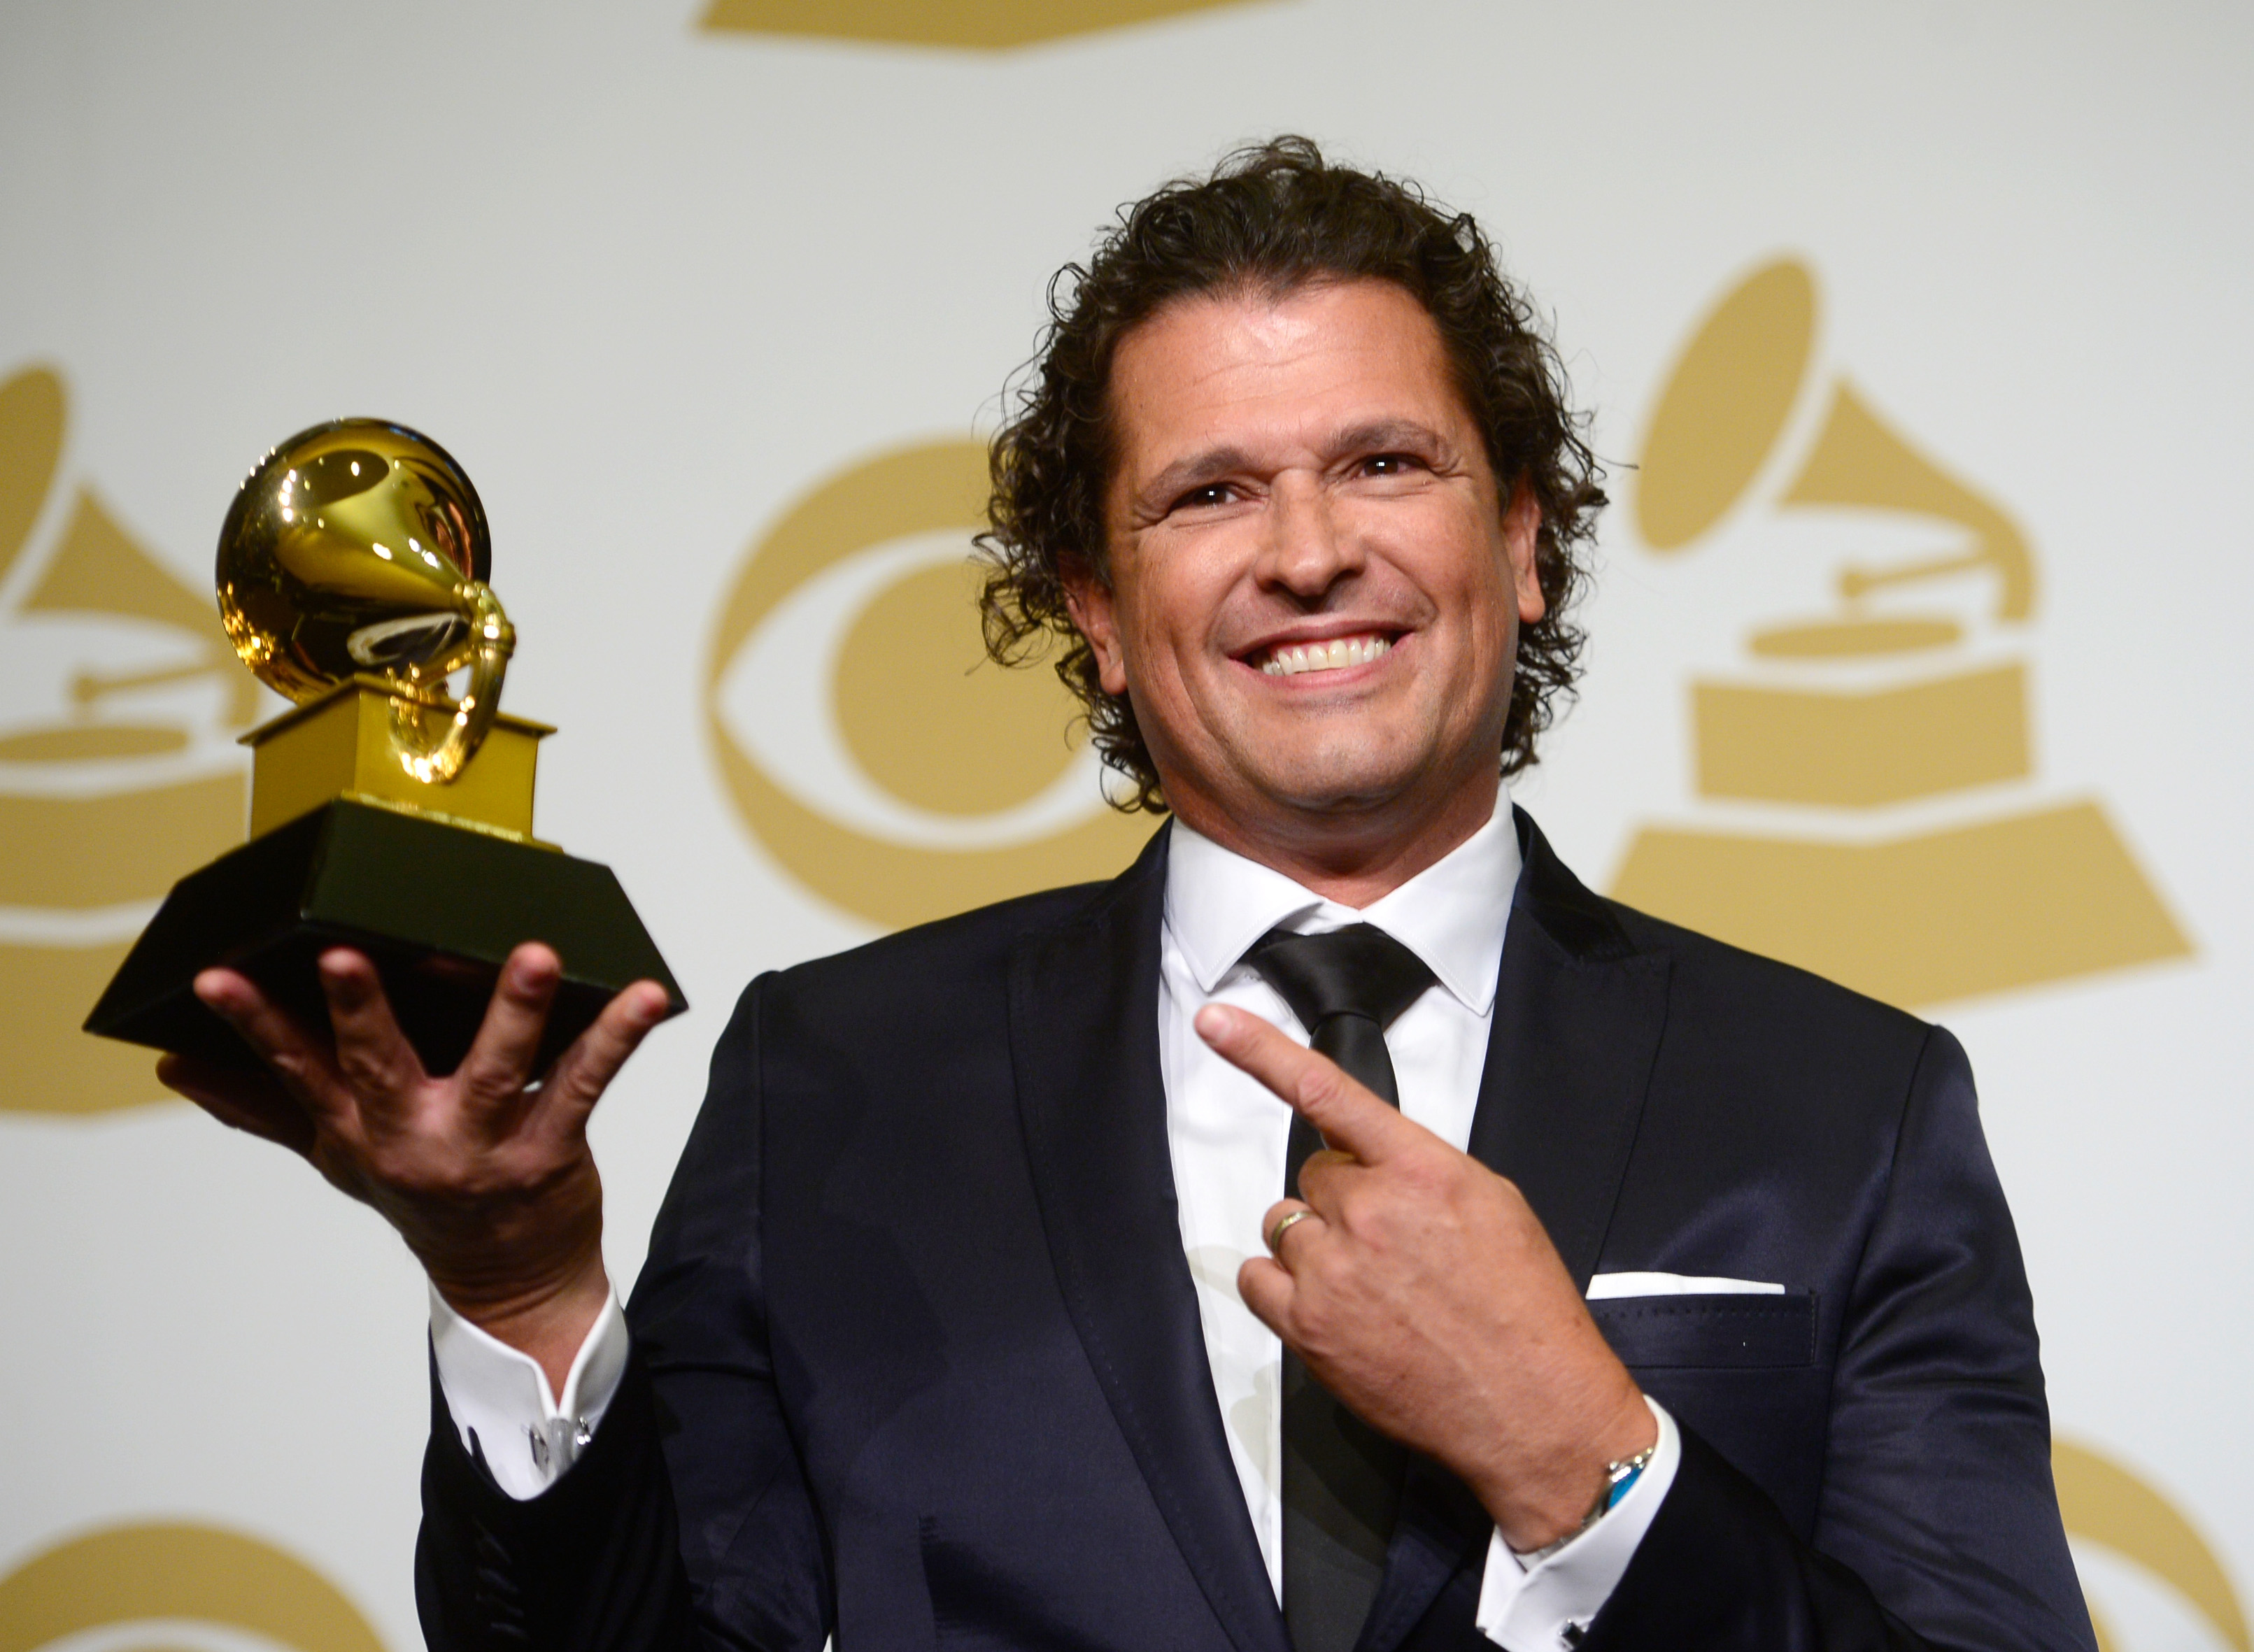 how tall is carlos vives